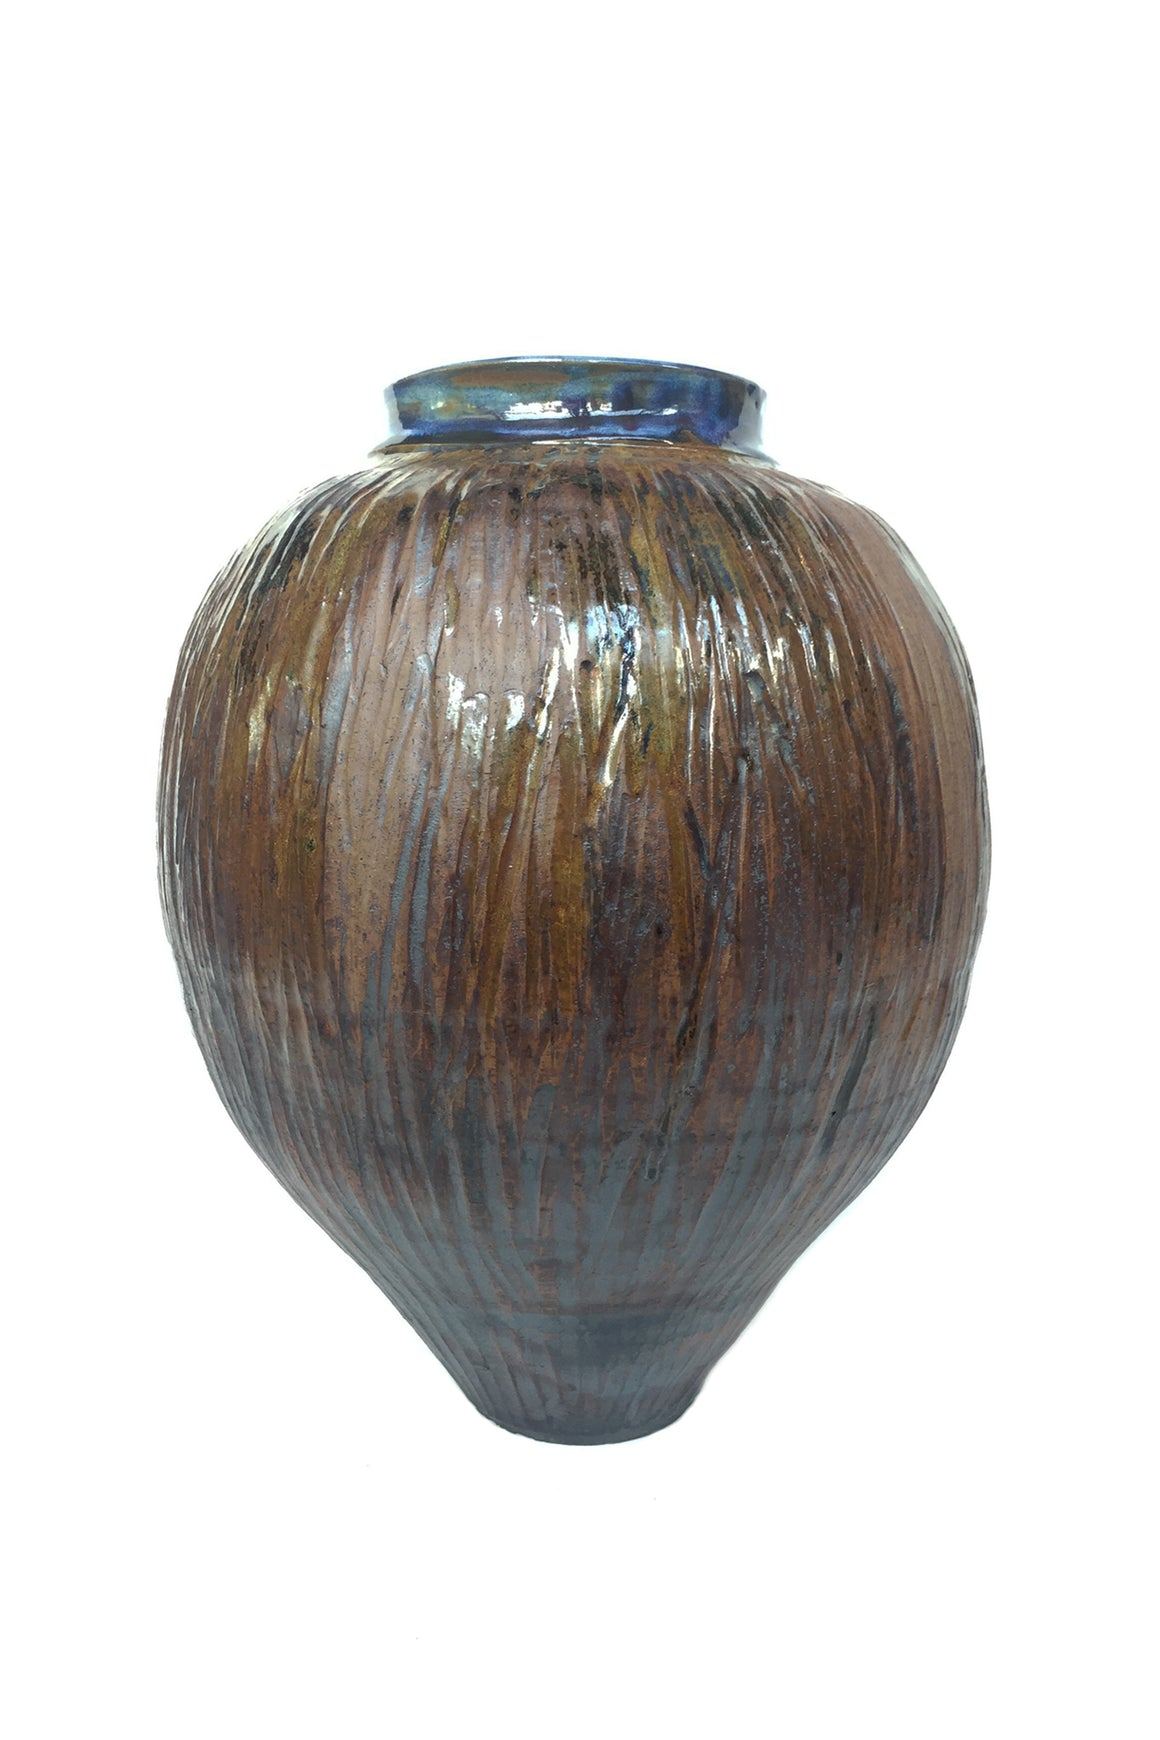 Thom Lussier Glazed Ceramic Urn With Blue Interior